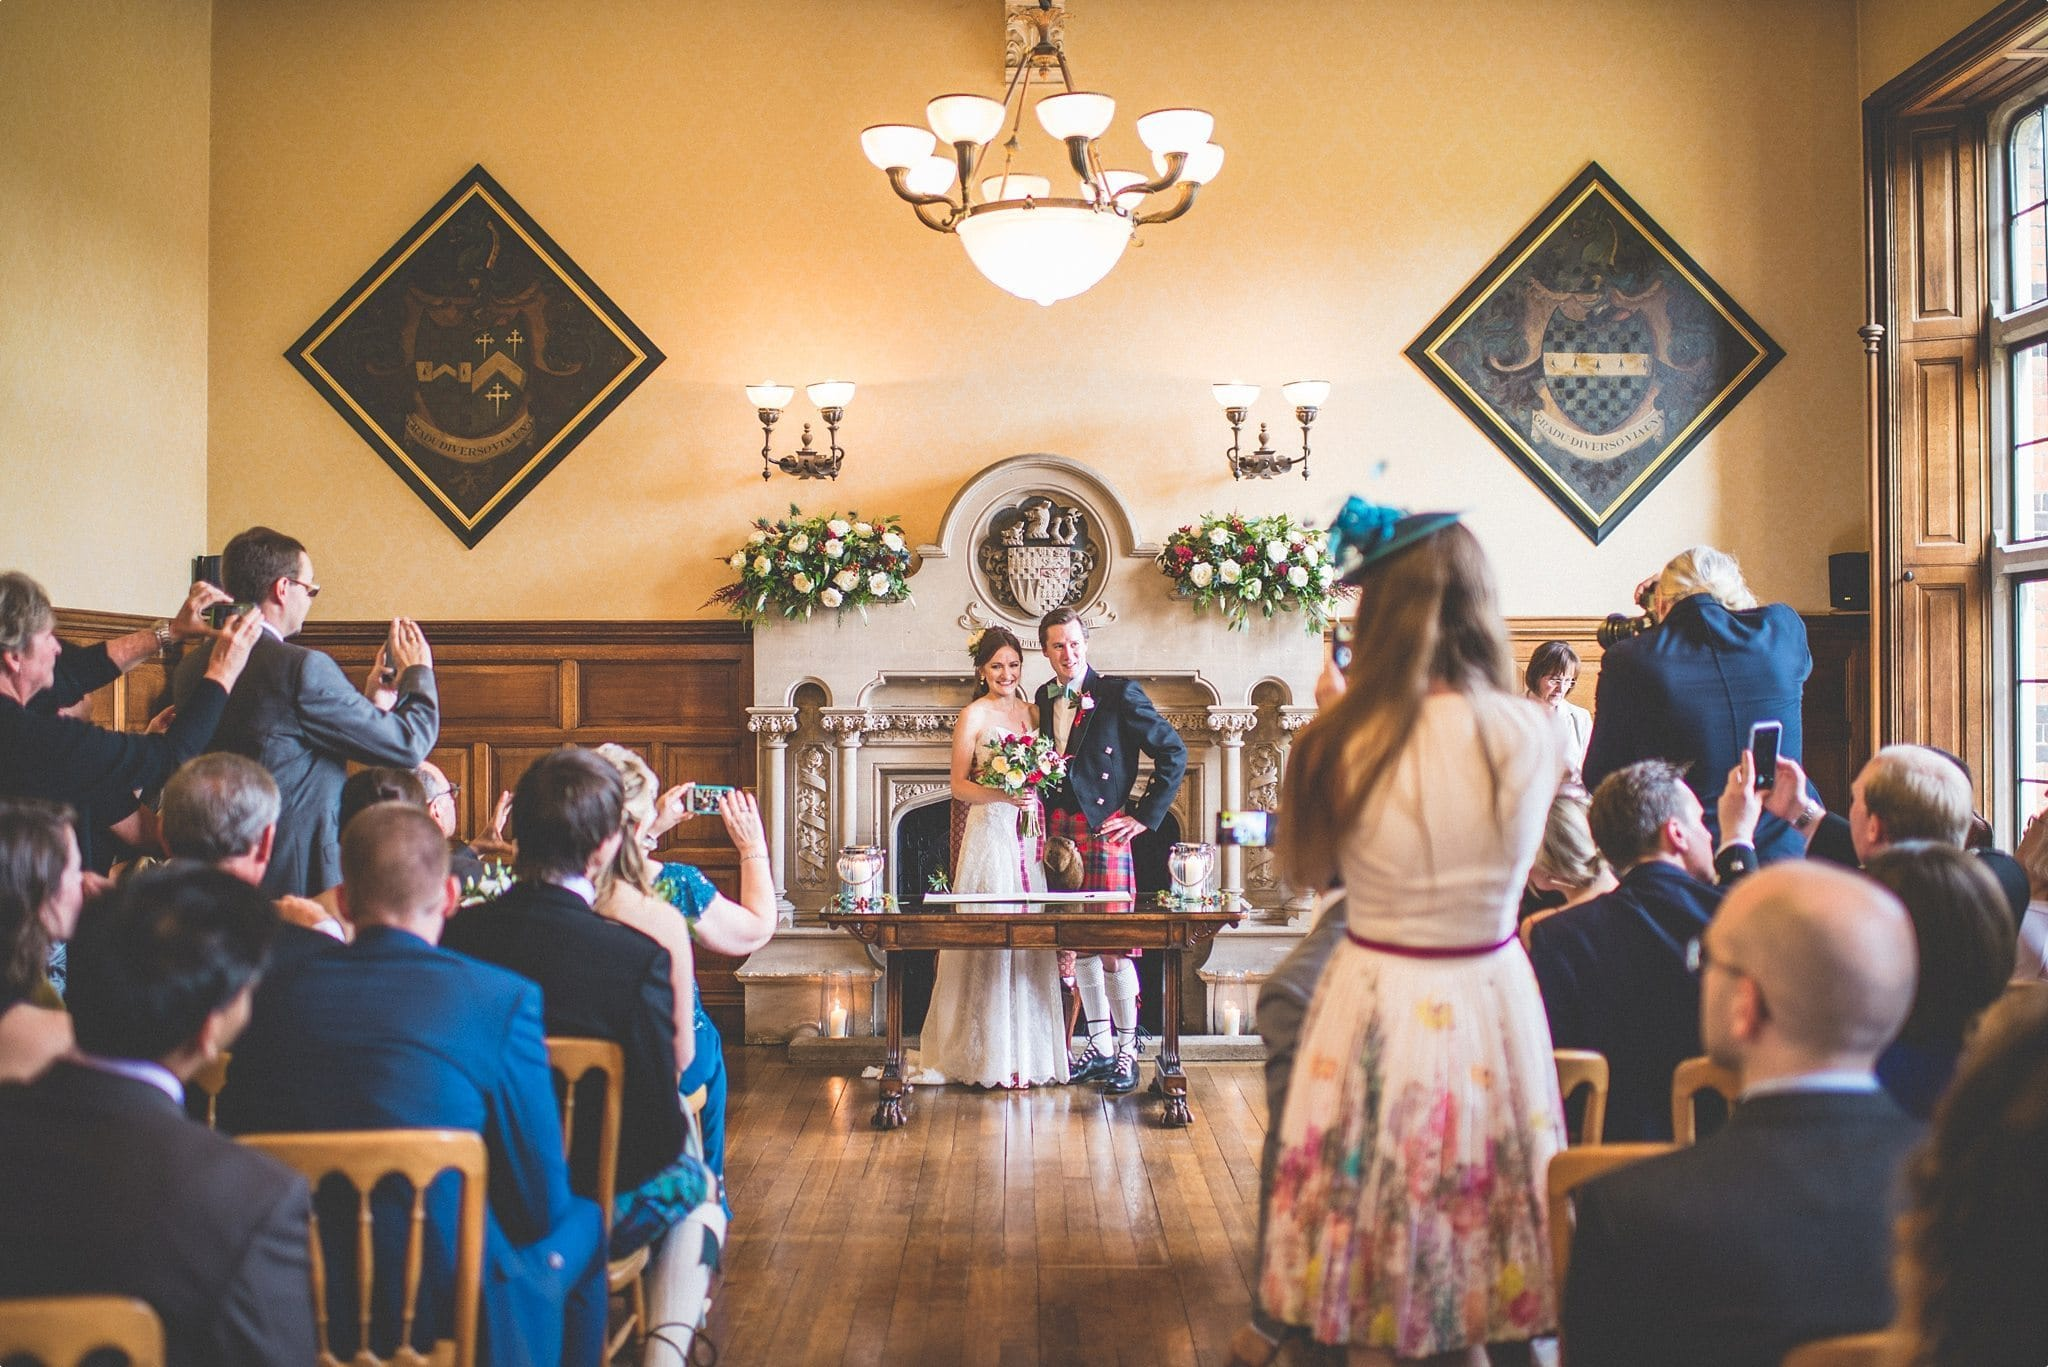 Bride and groom smiling at their wedding ceremony guests at the Elvetham Hotel